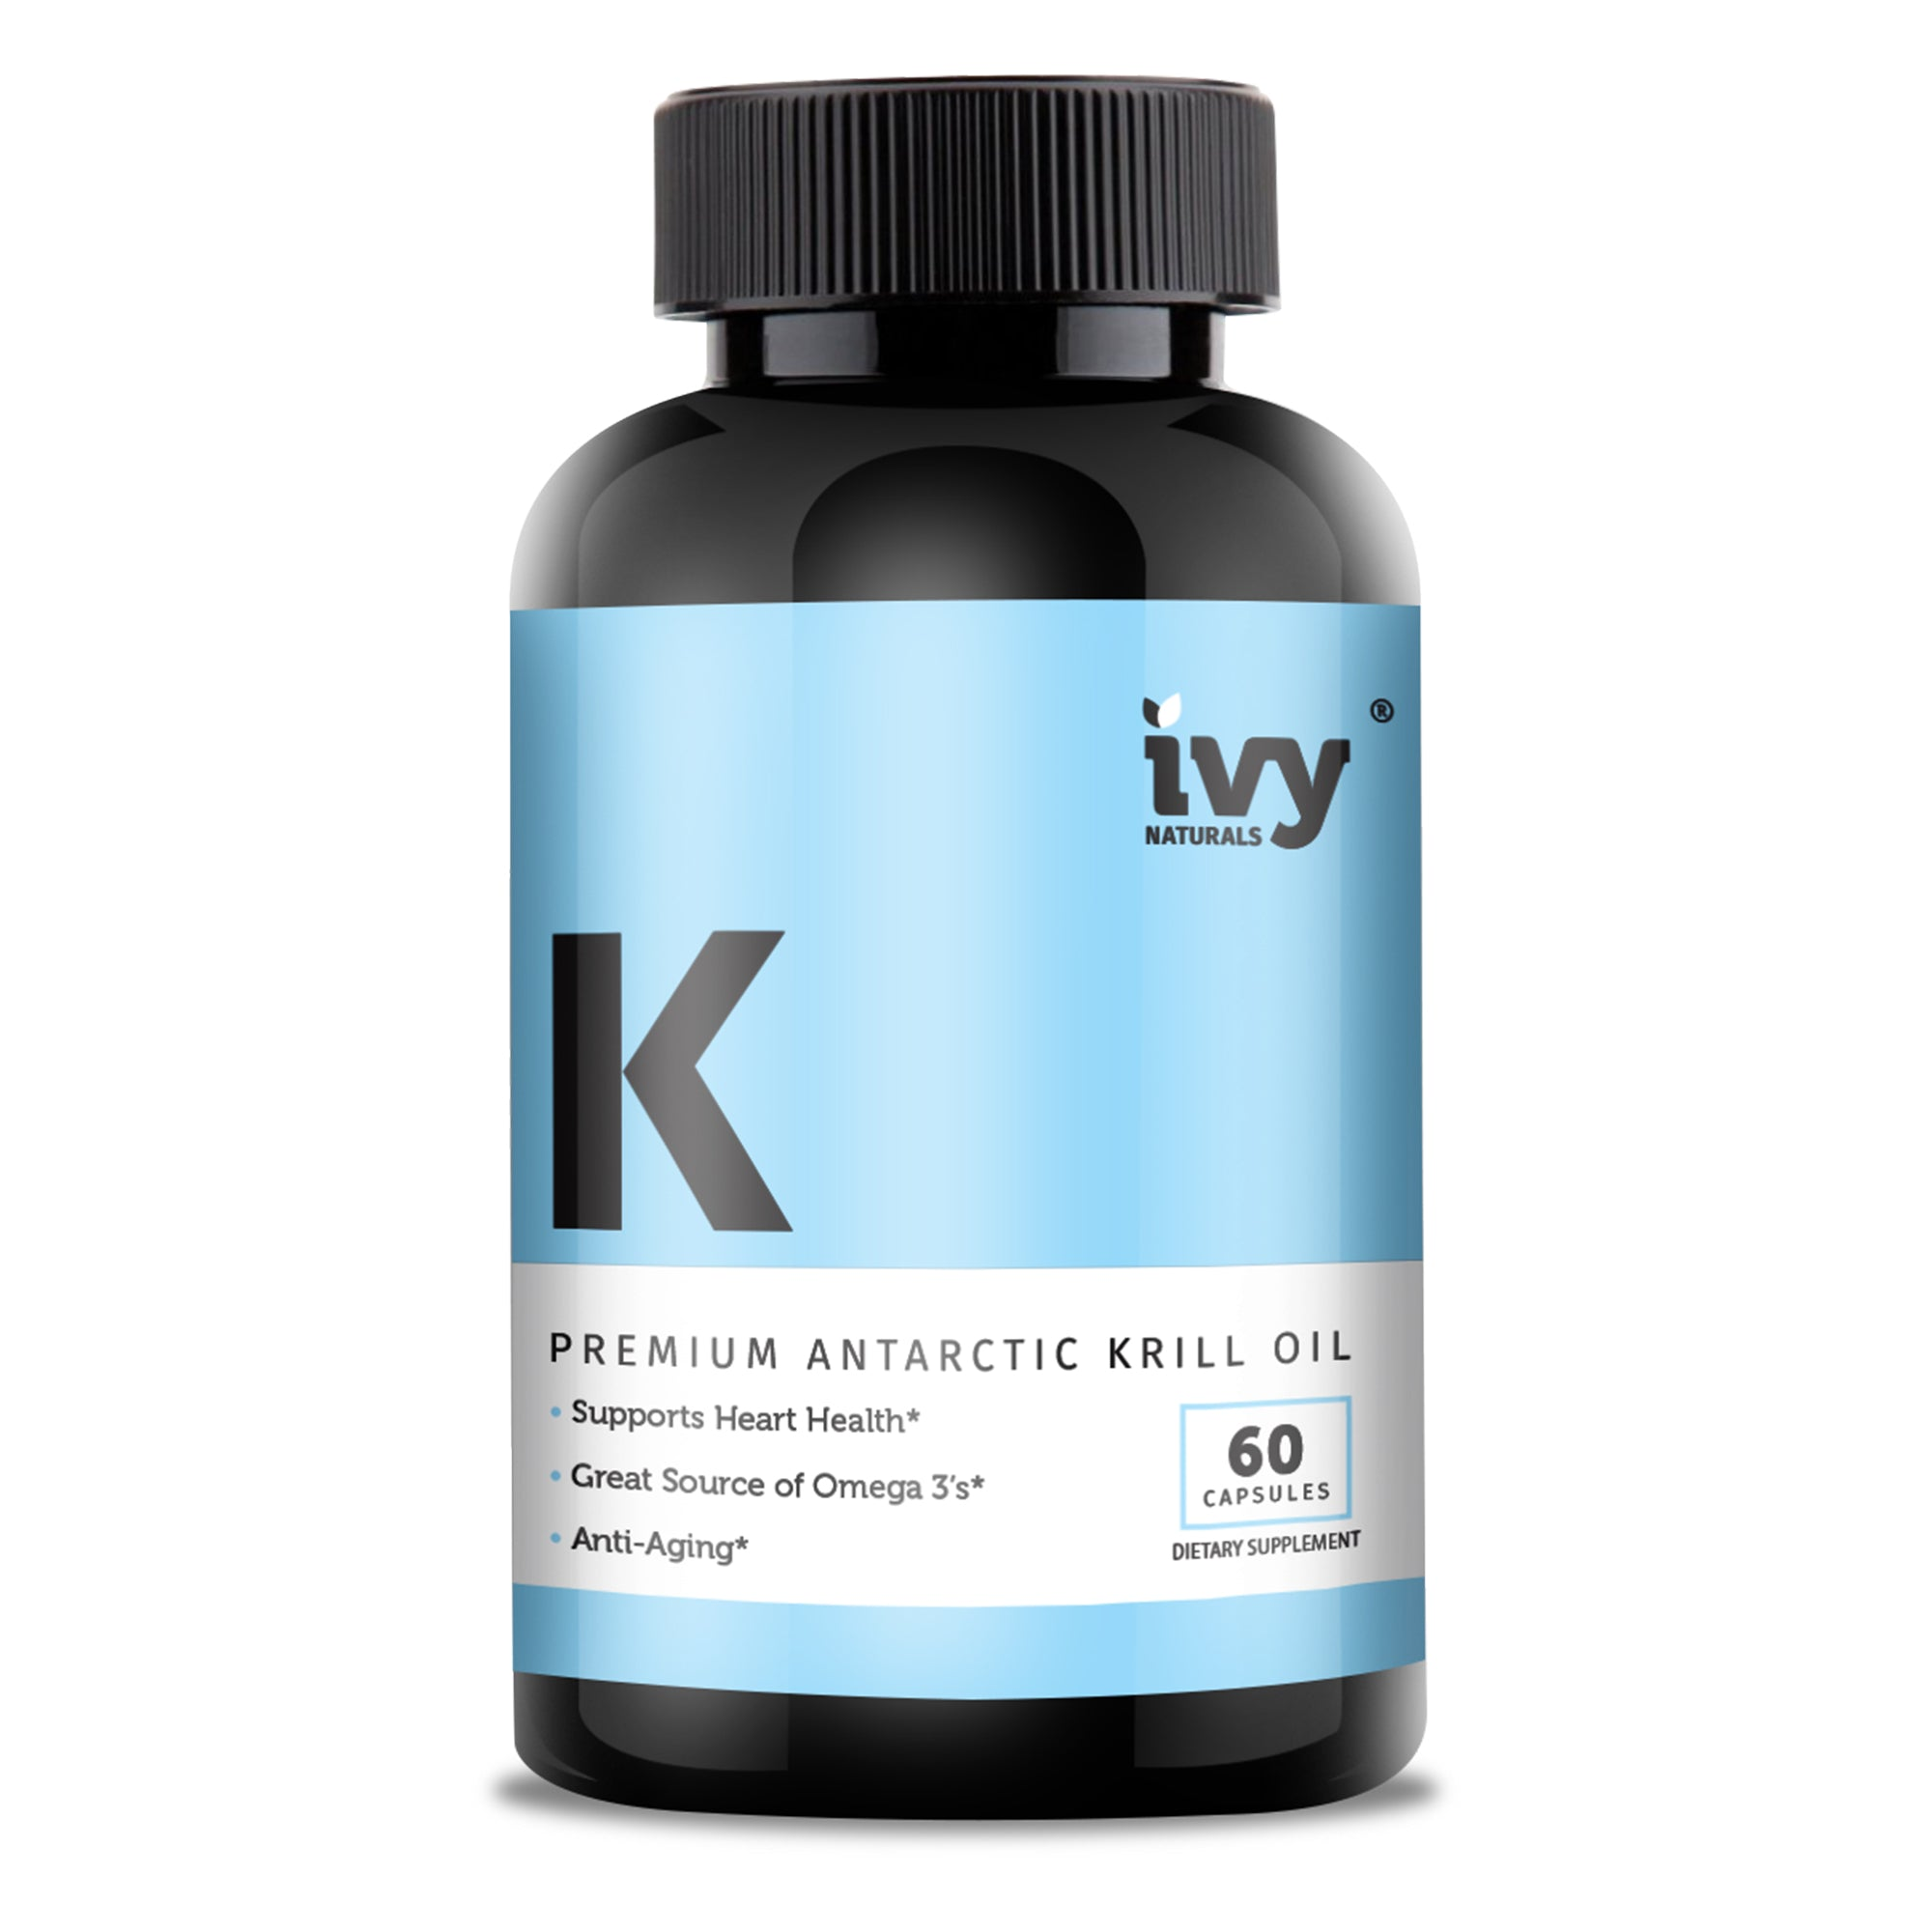 Premium Antarctic Krill Oil